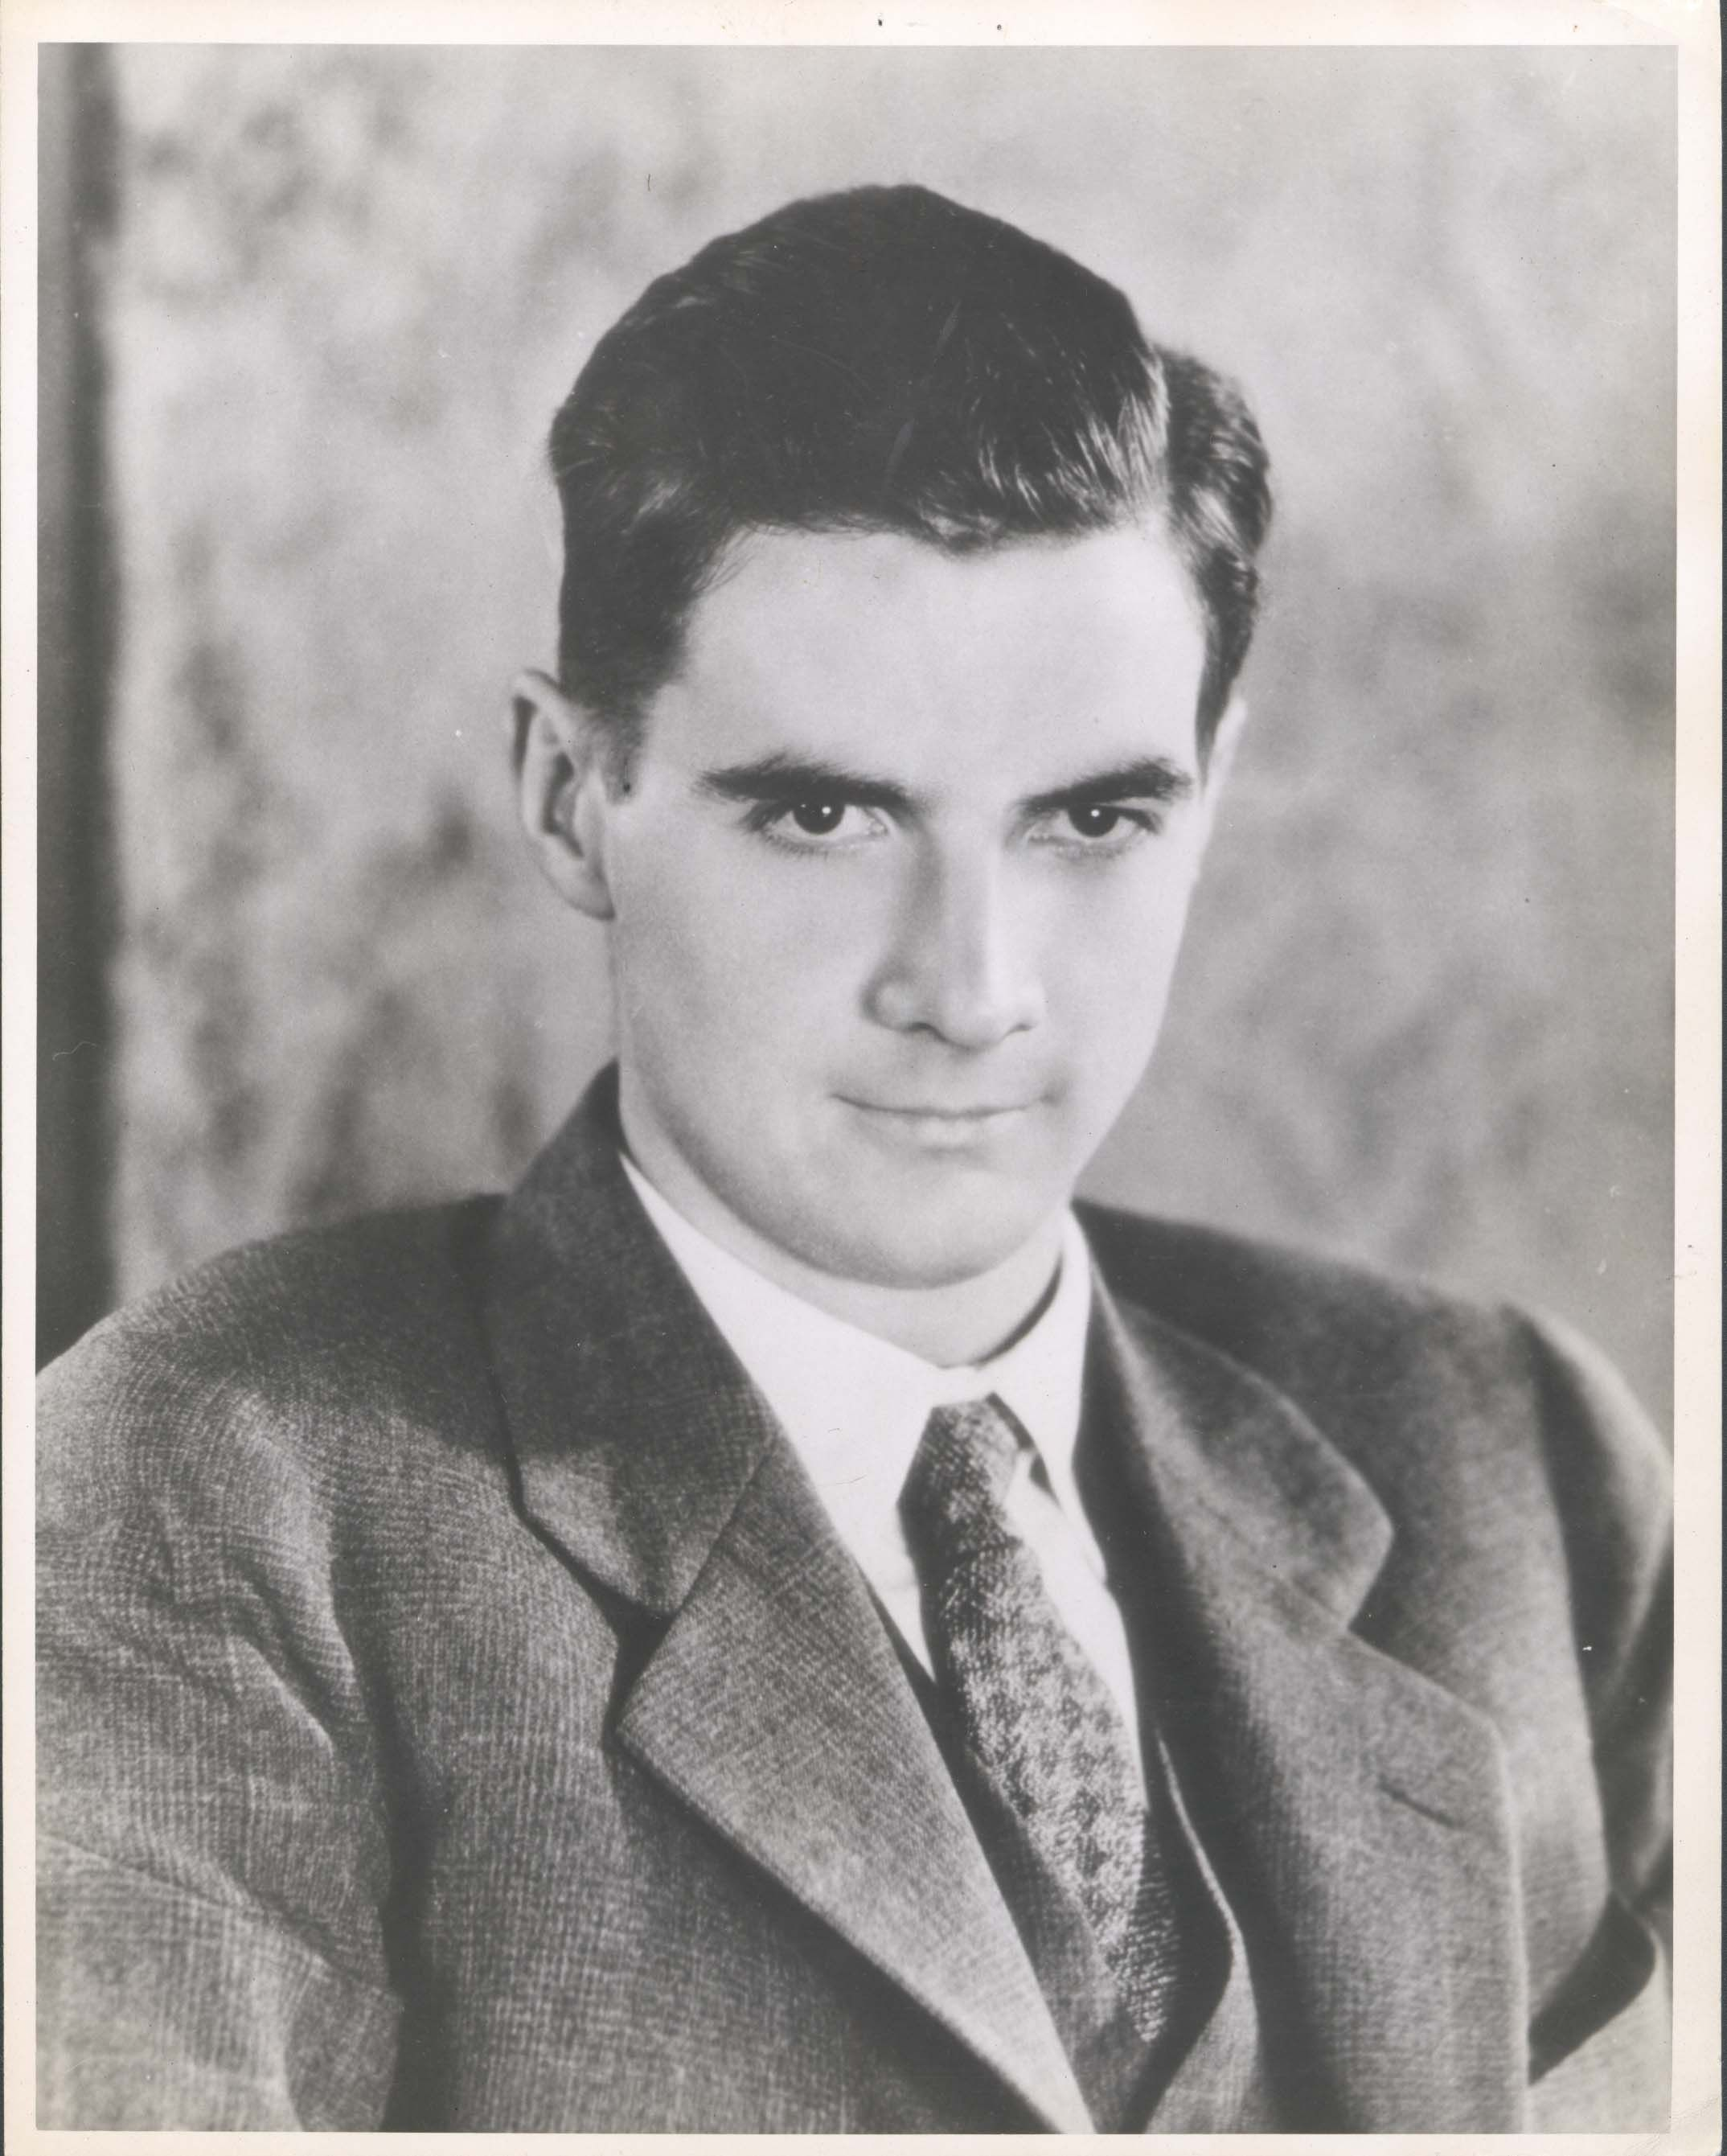 Howard Hughes Quotes: The Portrait Of A Young Howard Hughes Taken At The